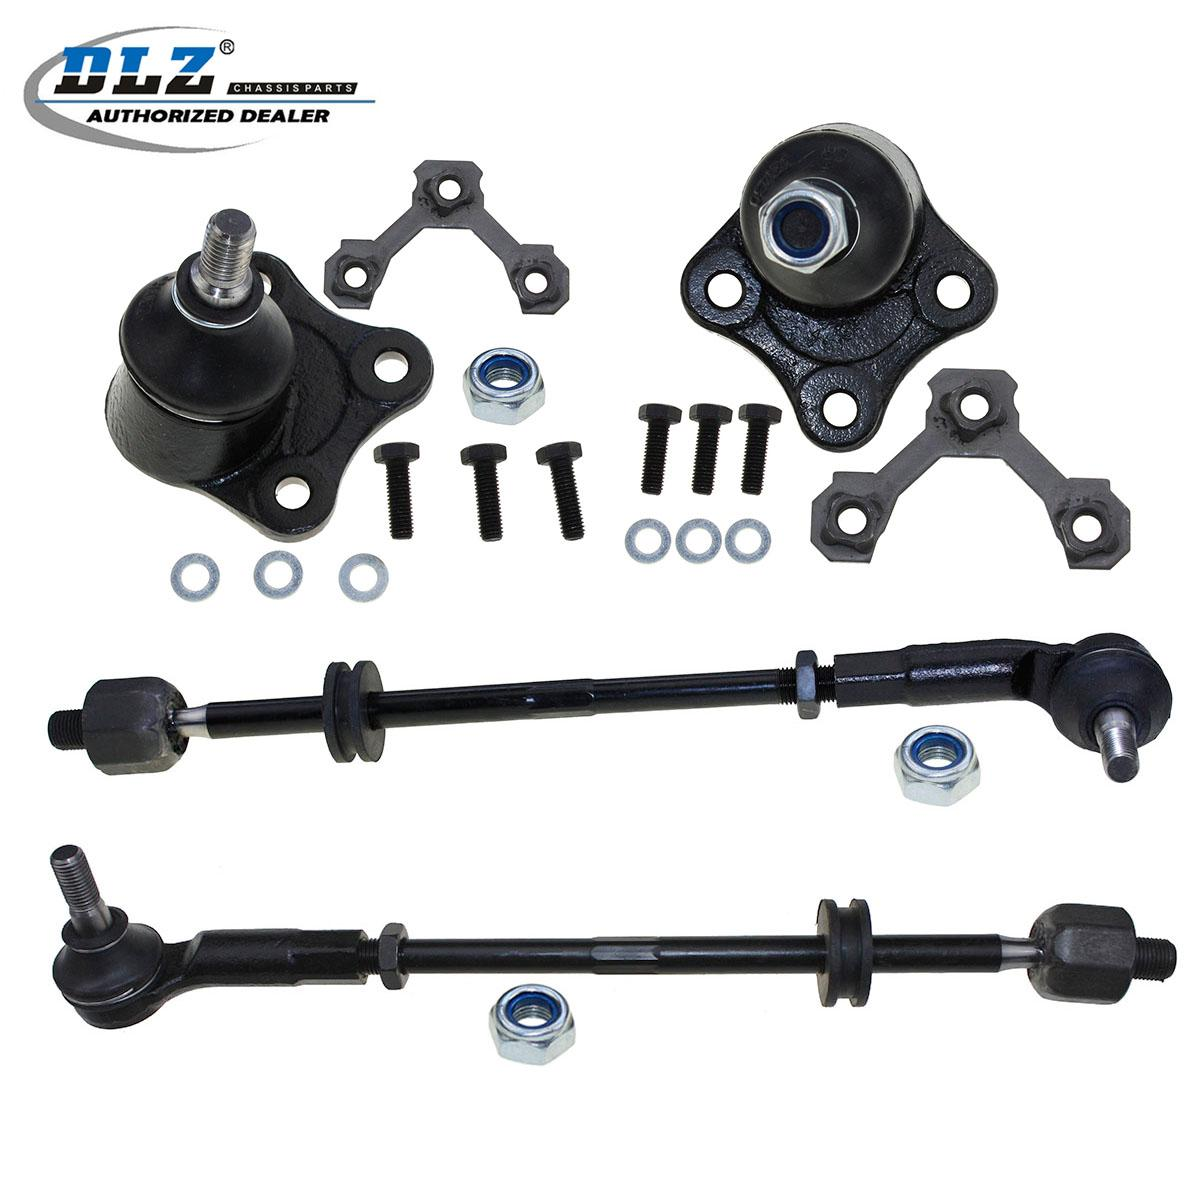 Volkswagon Bora Front Off Side Steering Ball Joint